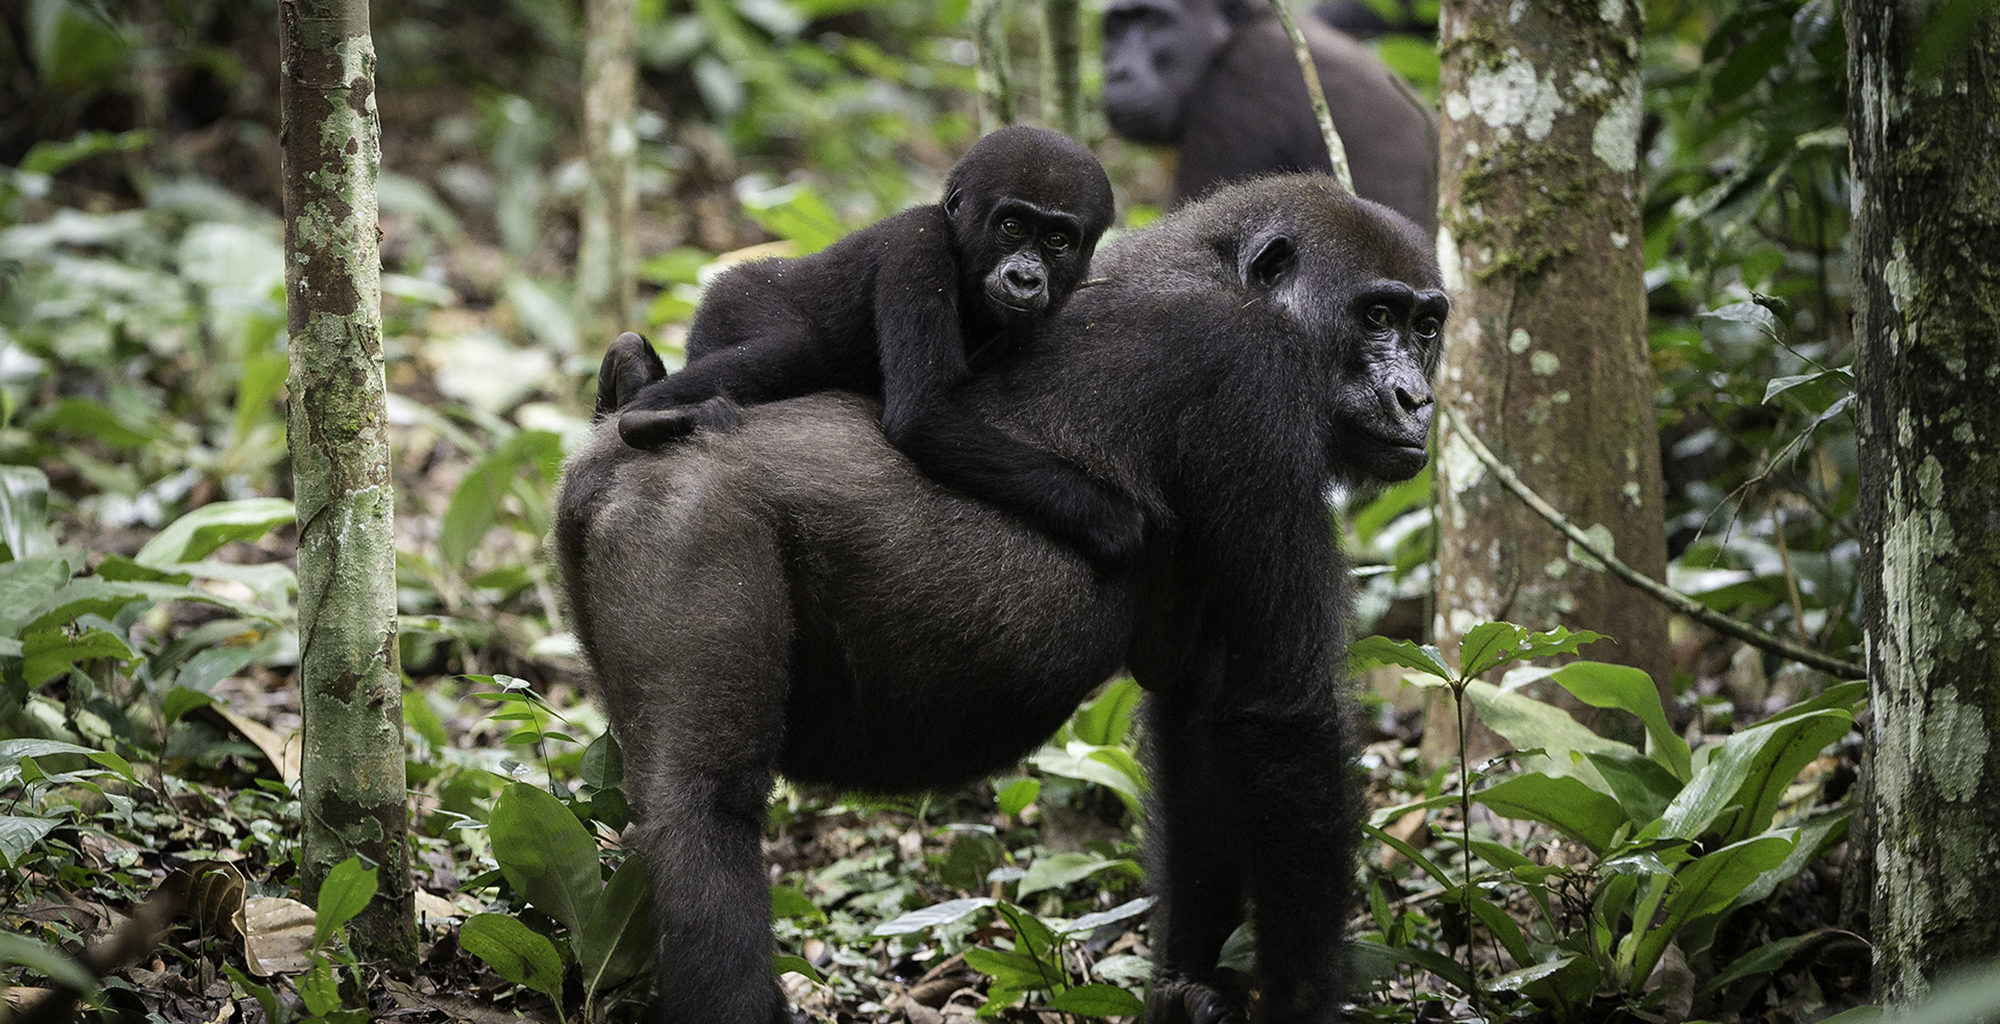 Republic-of-Congo-Ngaga-Camp-Gorilla